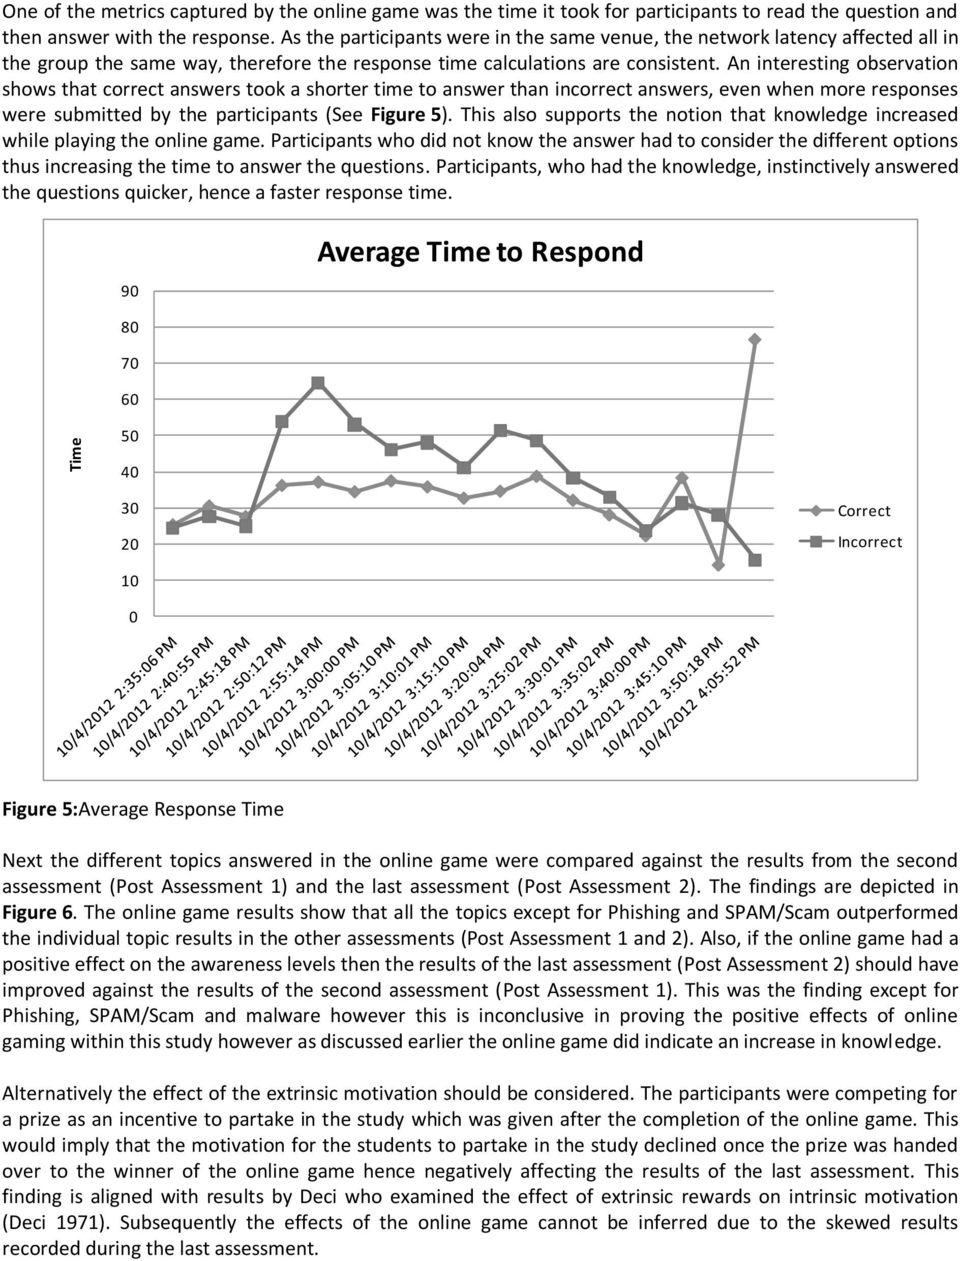 An interesting observation shows that correct answers took a shorter time to answer than incorrect answers, even when more responses were submitted by the participants (See Figure 5).